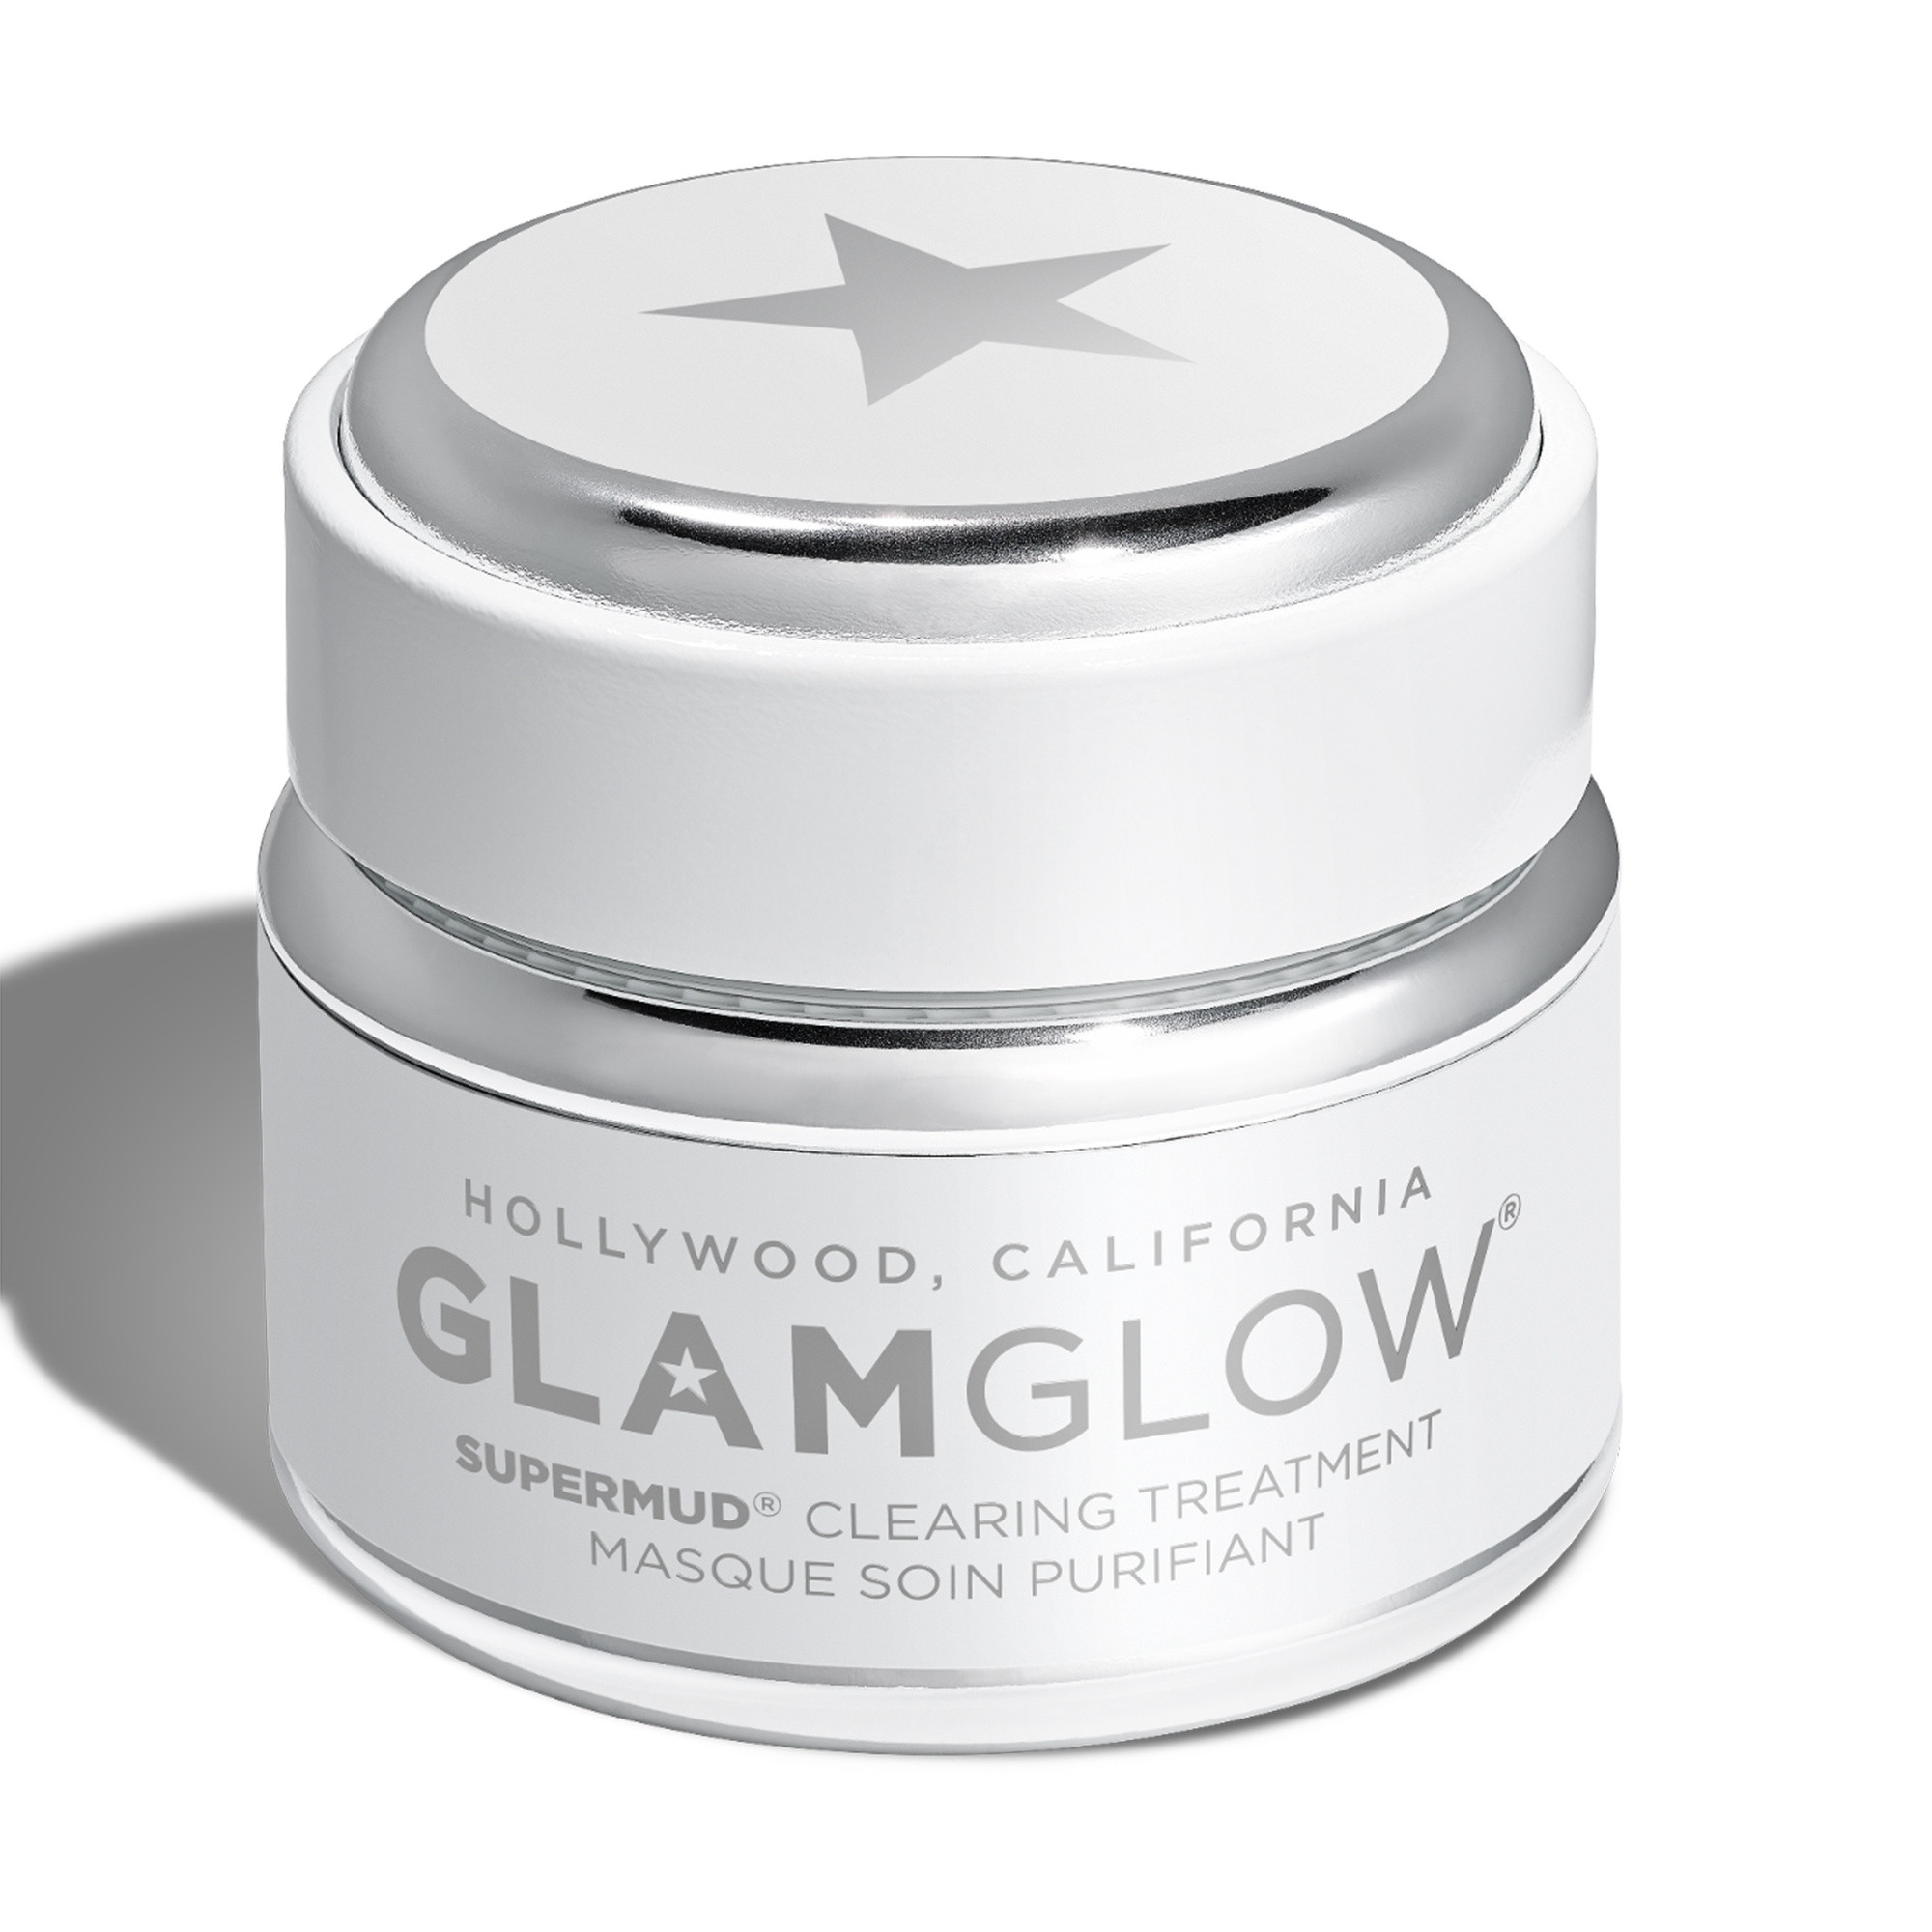 Glamglow supermud - clearing treatment 50 gr, Bianco, large image number 0